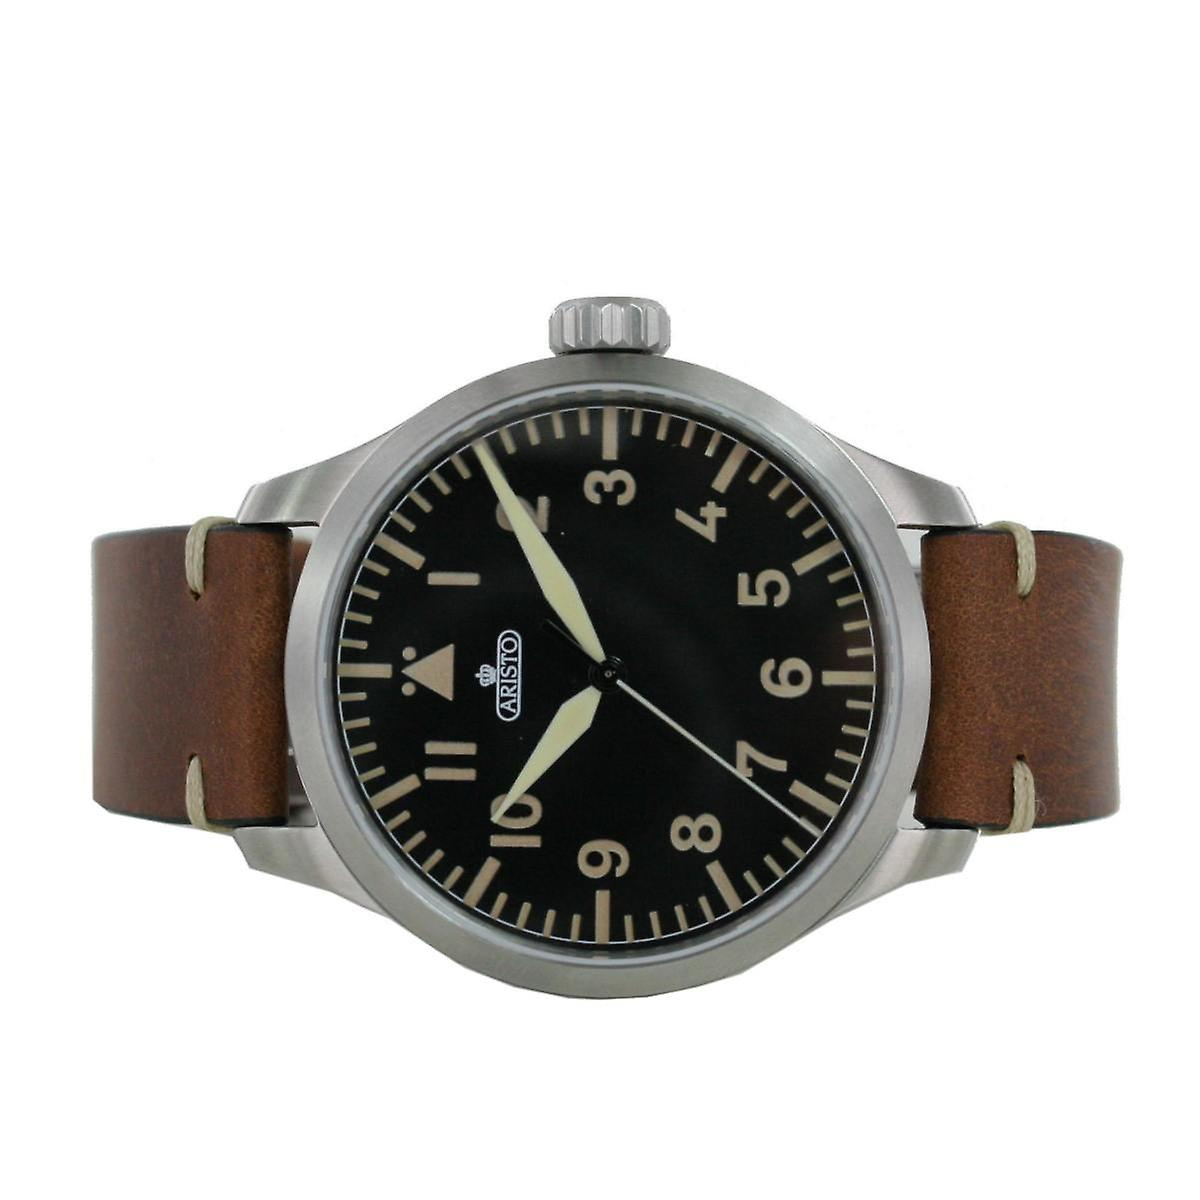 Aristo men's watch automatic Bracelet Watch 7 H 96 vintage 47 leather